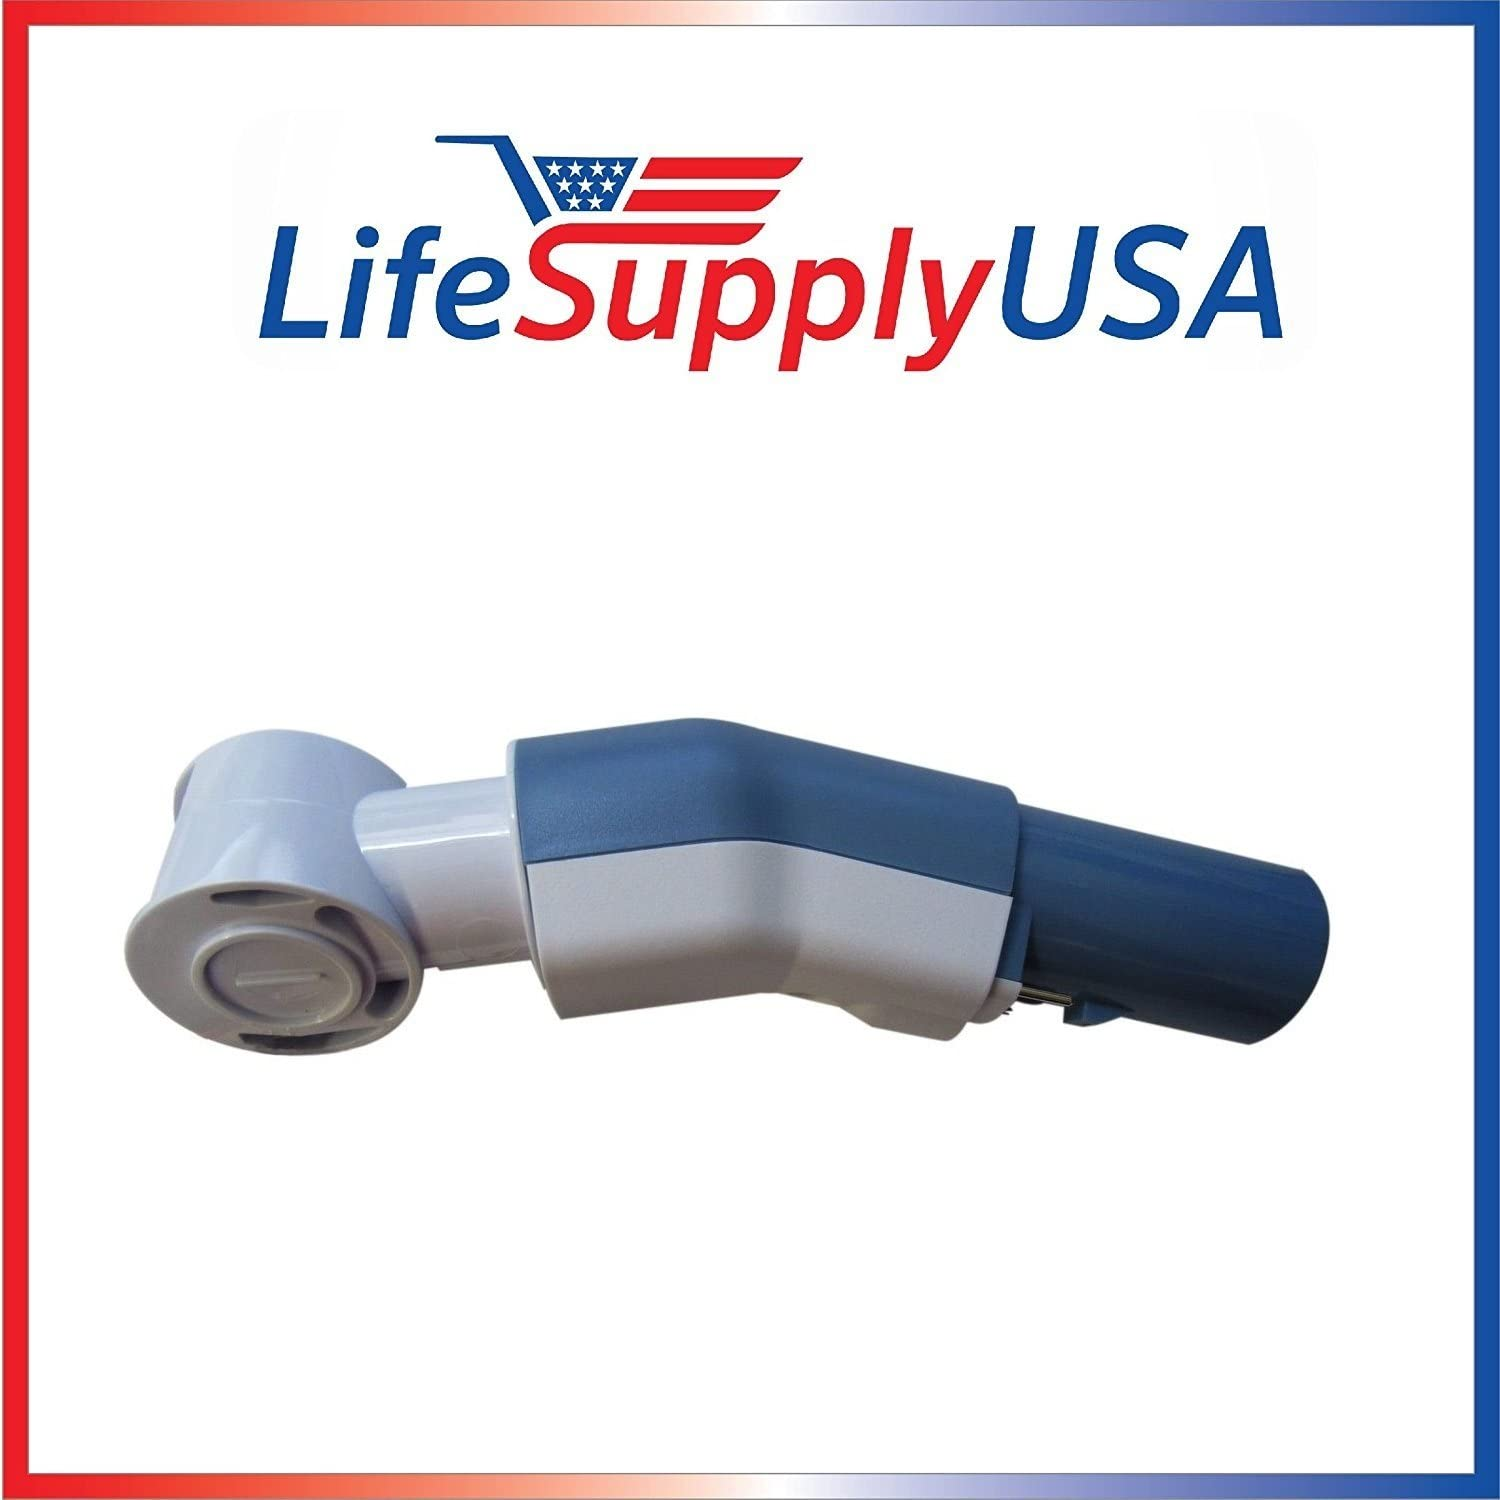 Legacy Guardian 8000 LifeSupplyUSA Replacement Blue Elbow Neck Pivot for Electrolux Aerus Epic 6500 Centralux Vacuum Renaissance 9000